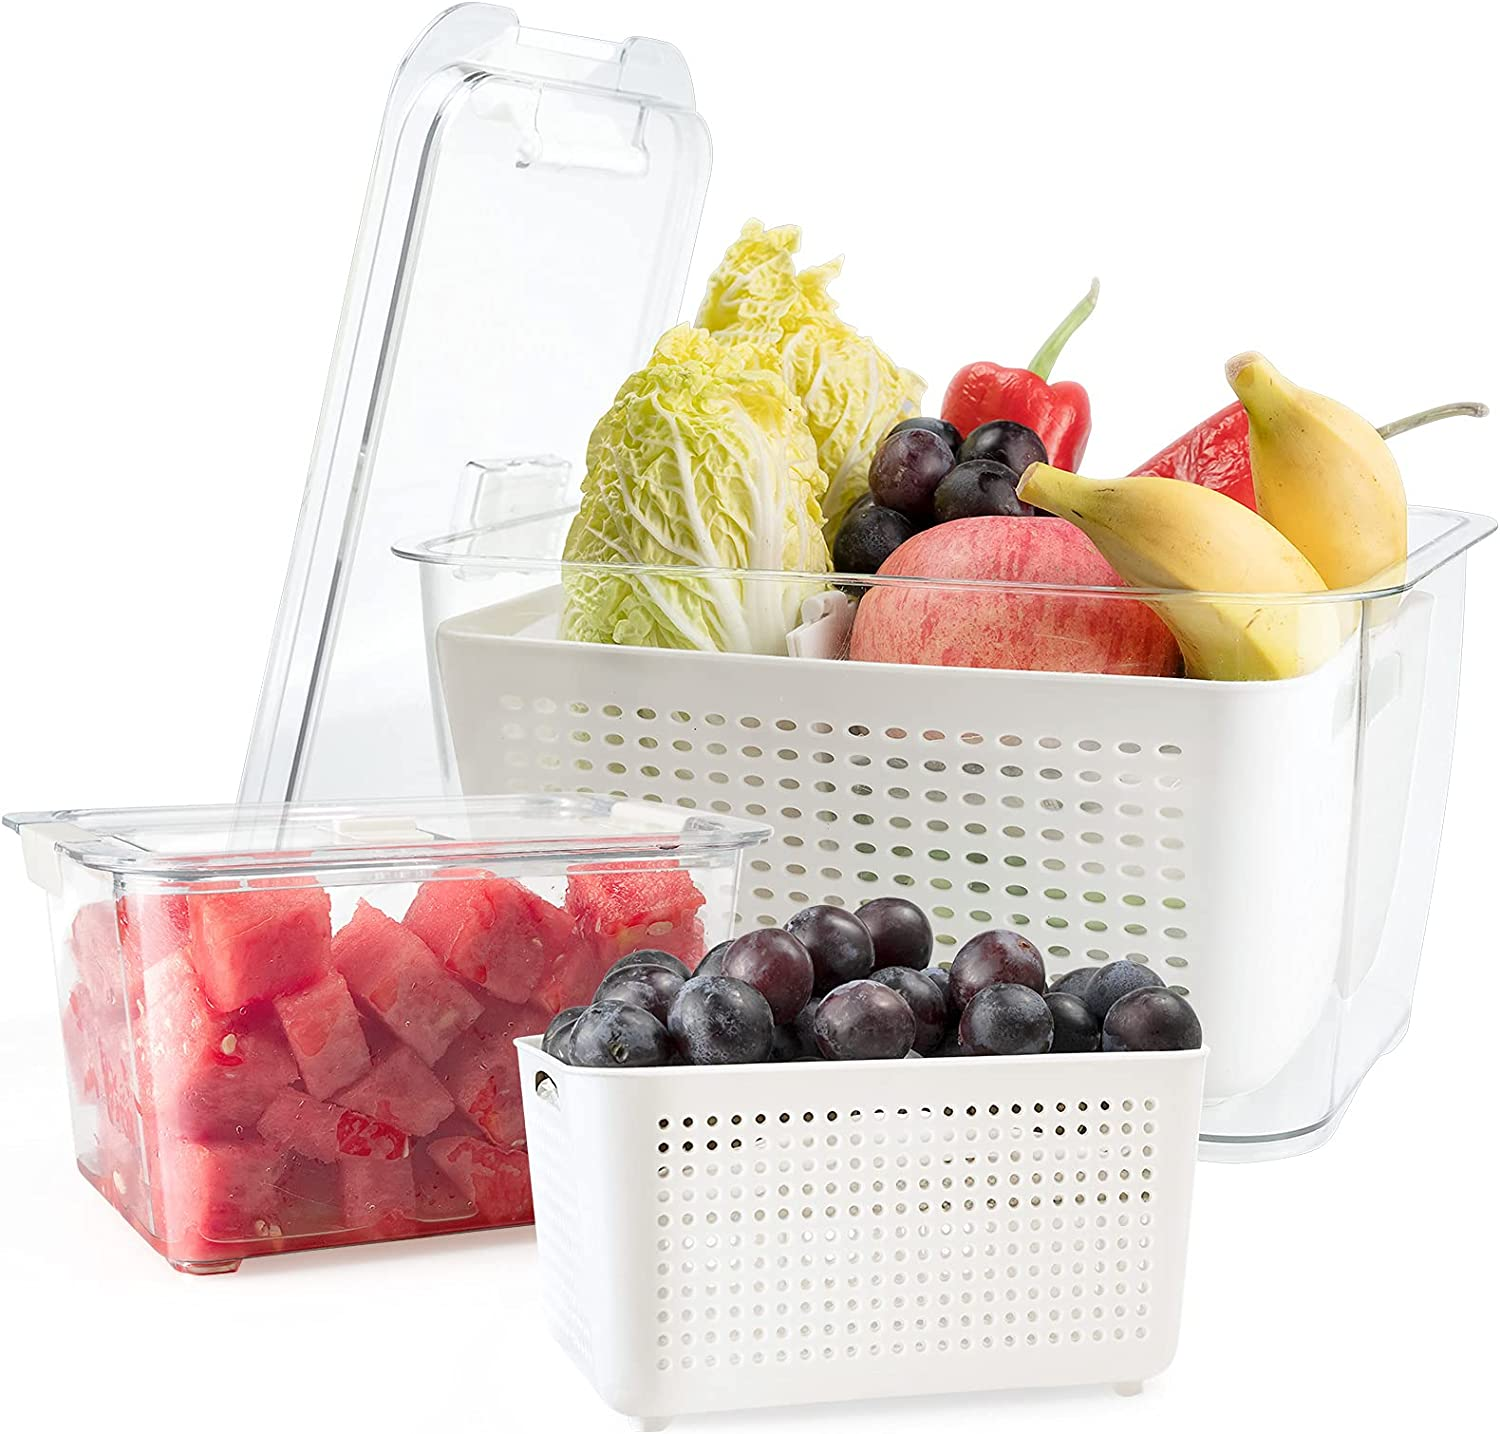 Rarapop 2 Pack Fridge Produce Saver Stay Fresh Containers with Strainers and Vented Lids, Food Storage Containers Refrigerator Organizer Bin Baskets for Veggie, Berry and Fruits (Large & Medium)